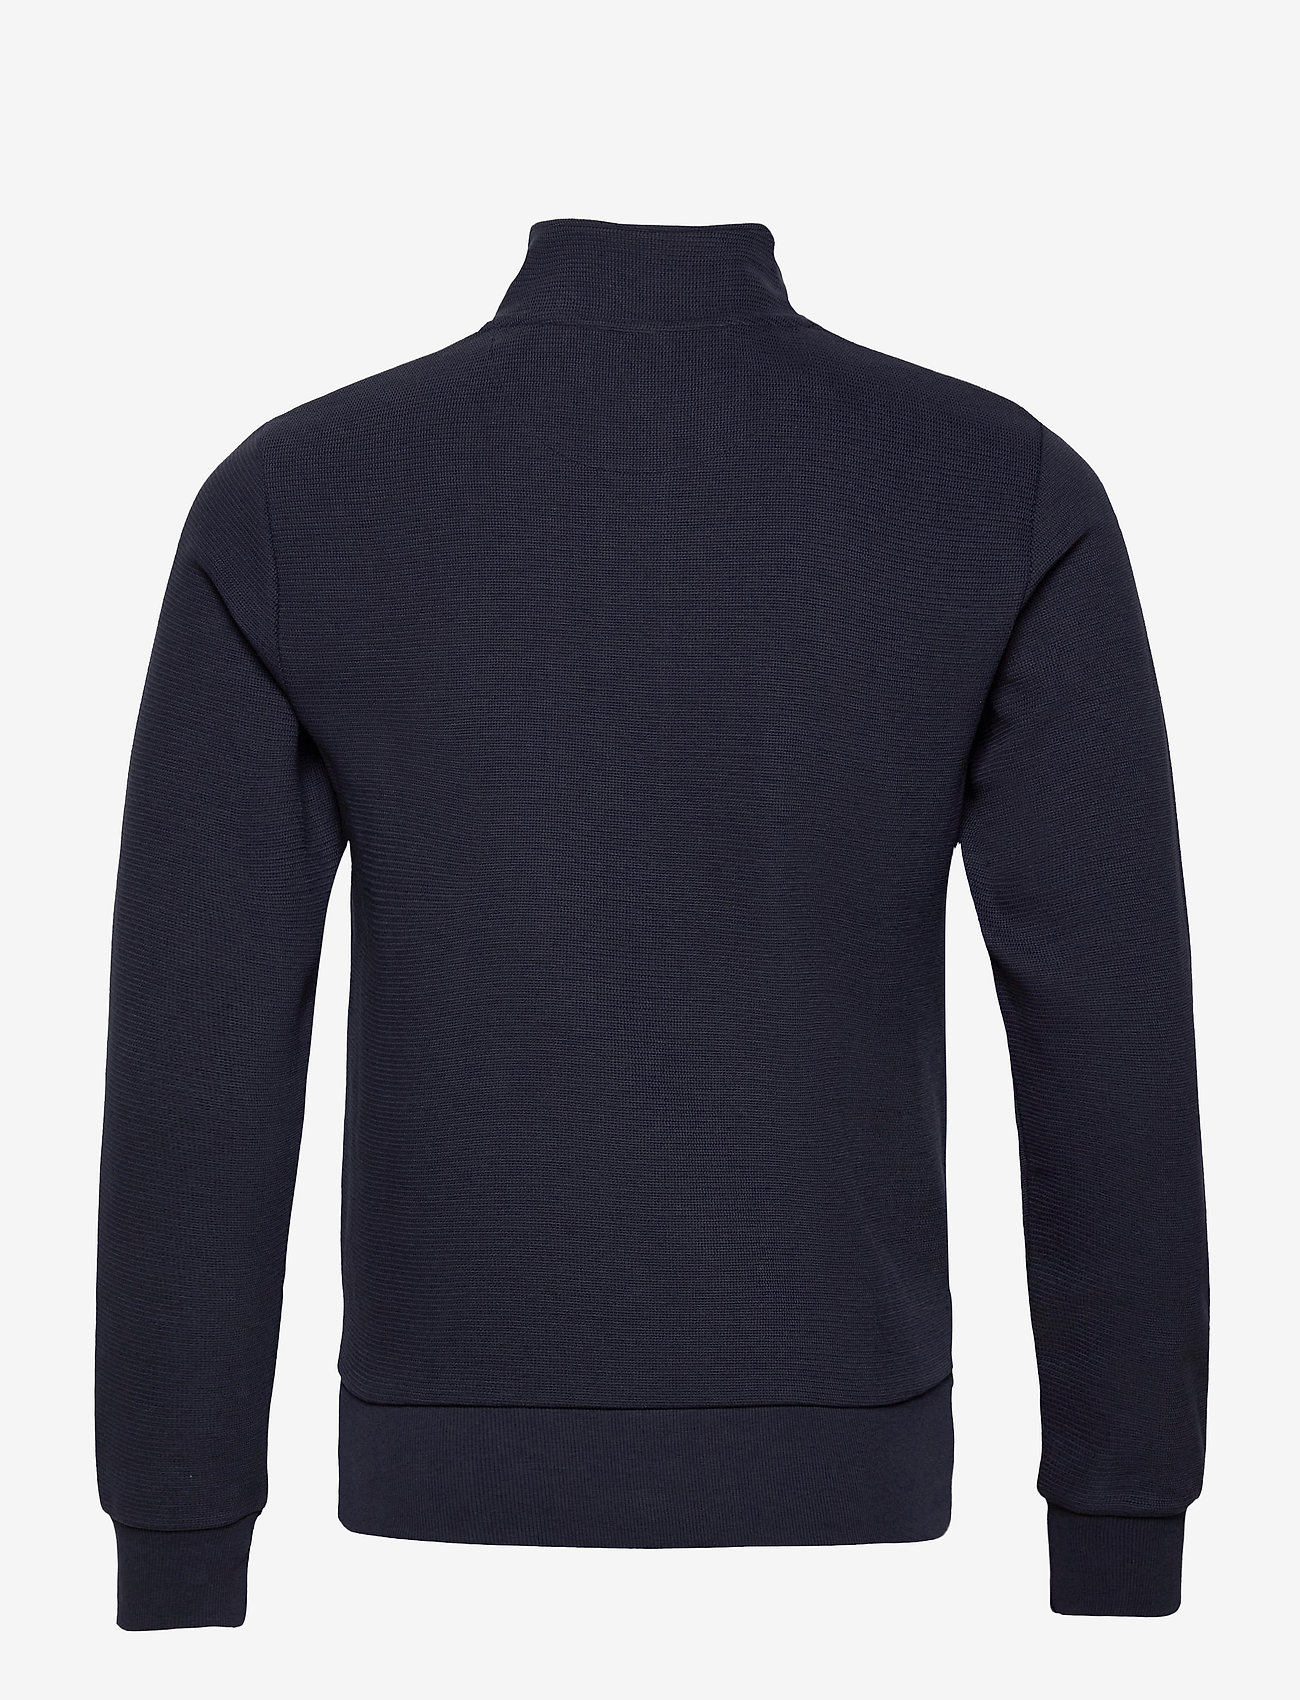 GANT - D2. STRUCTURE HALF ZIP - basic sweatshirts - evening blue - 1